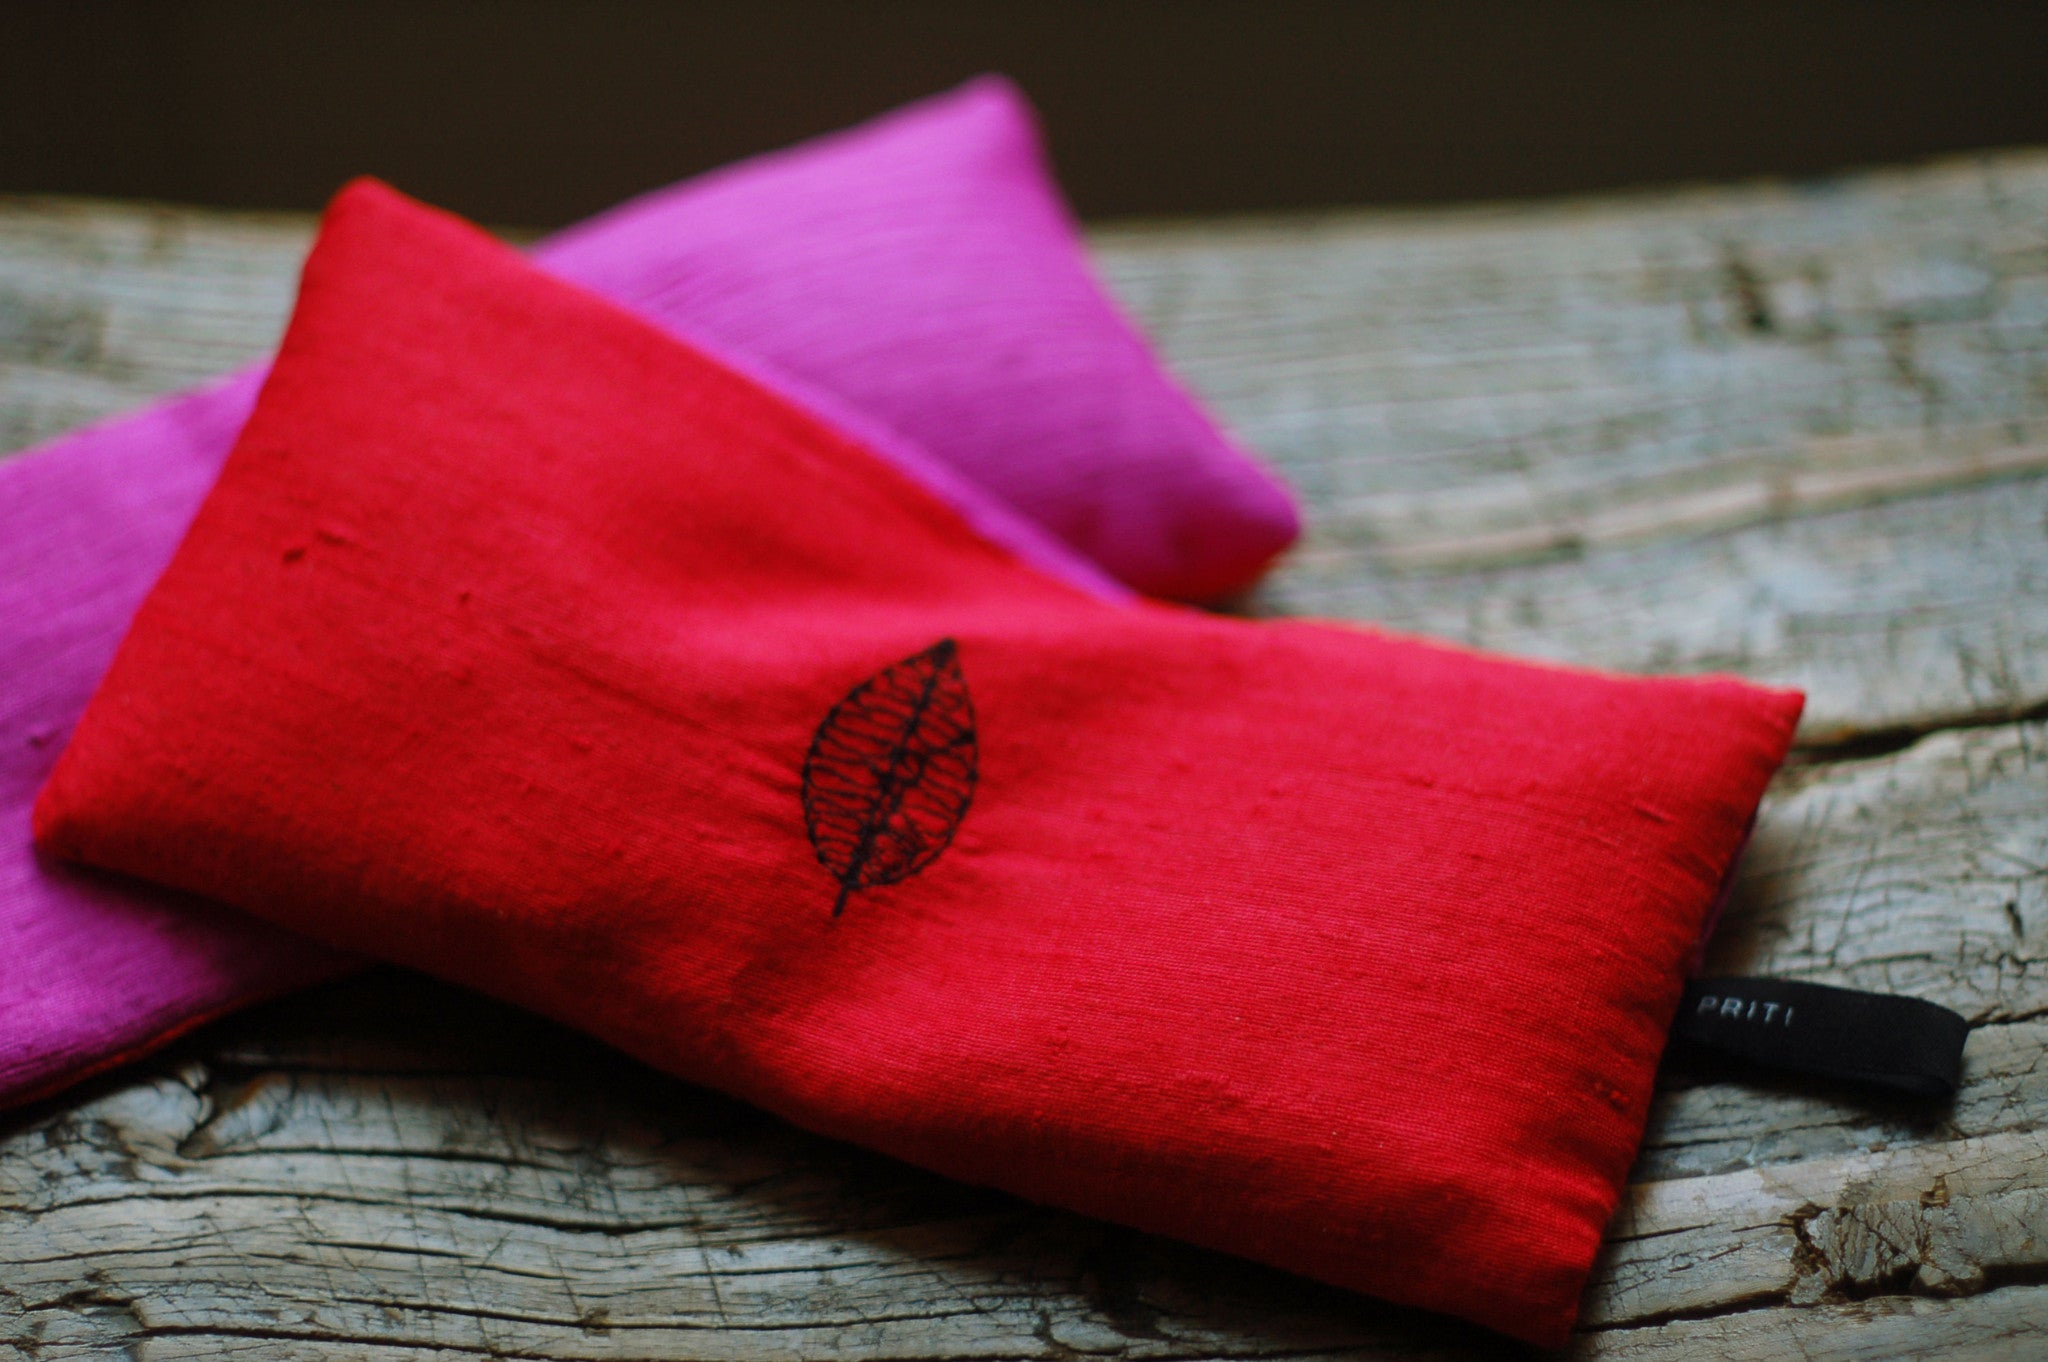 Priti Collection Silk Eye Pillow. color : raw fire and magenta two-tone